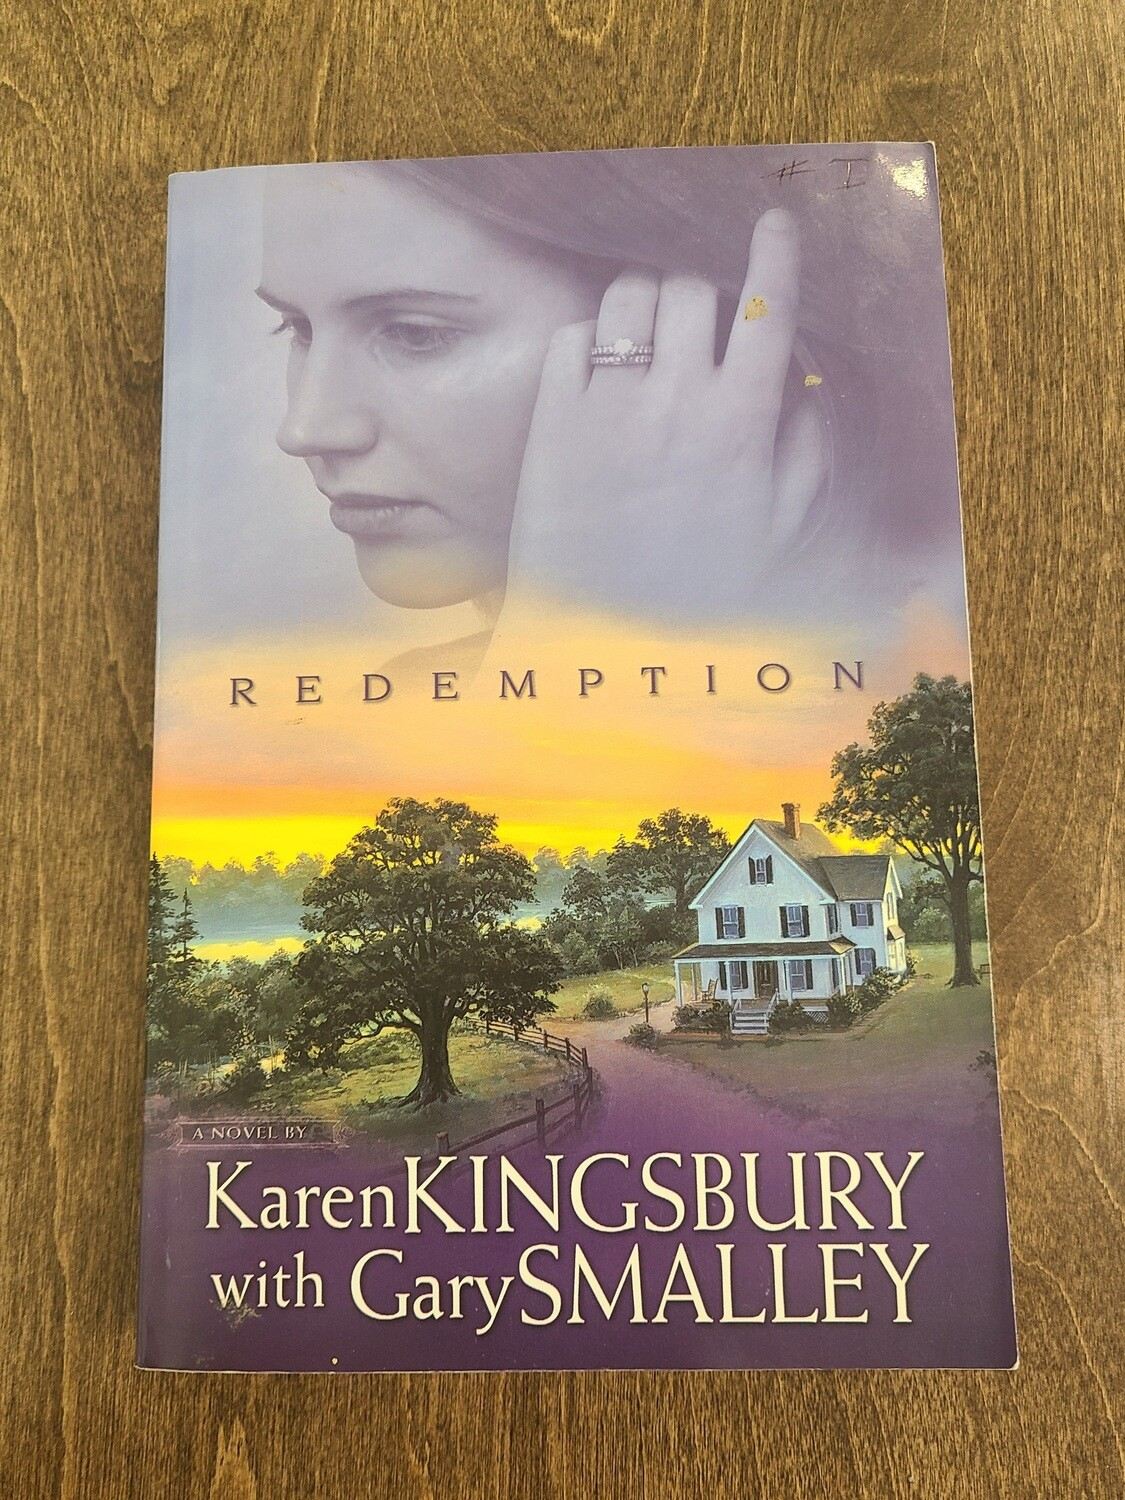 Redemption by Karen Kingsbury with Gary Smalley